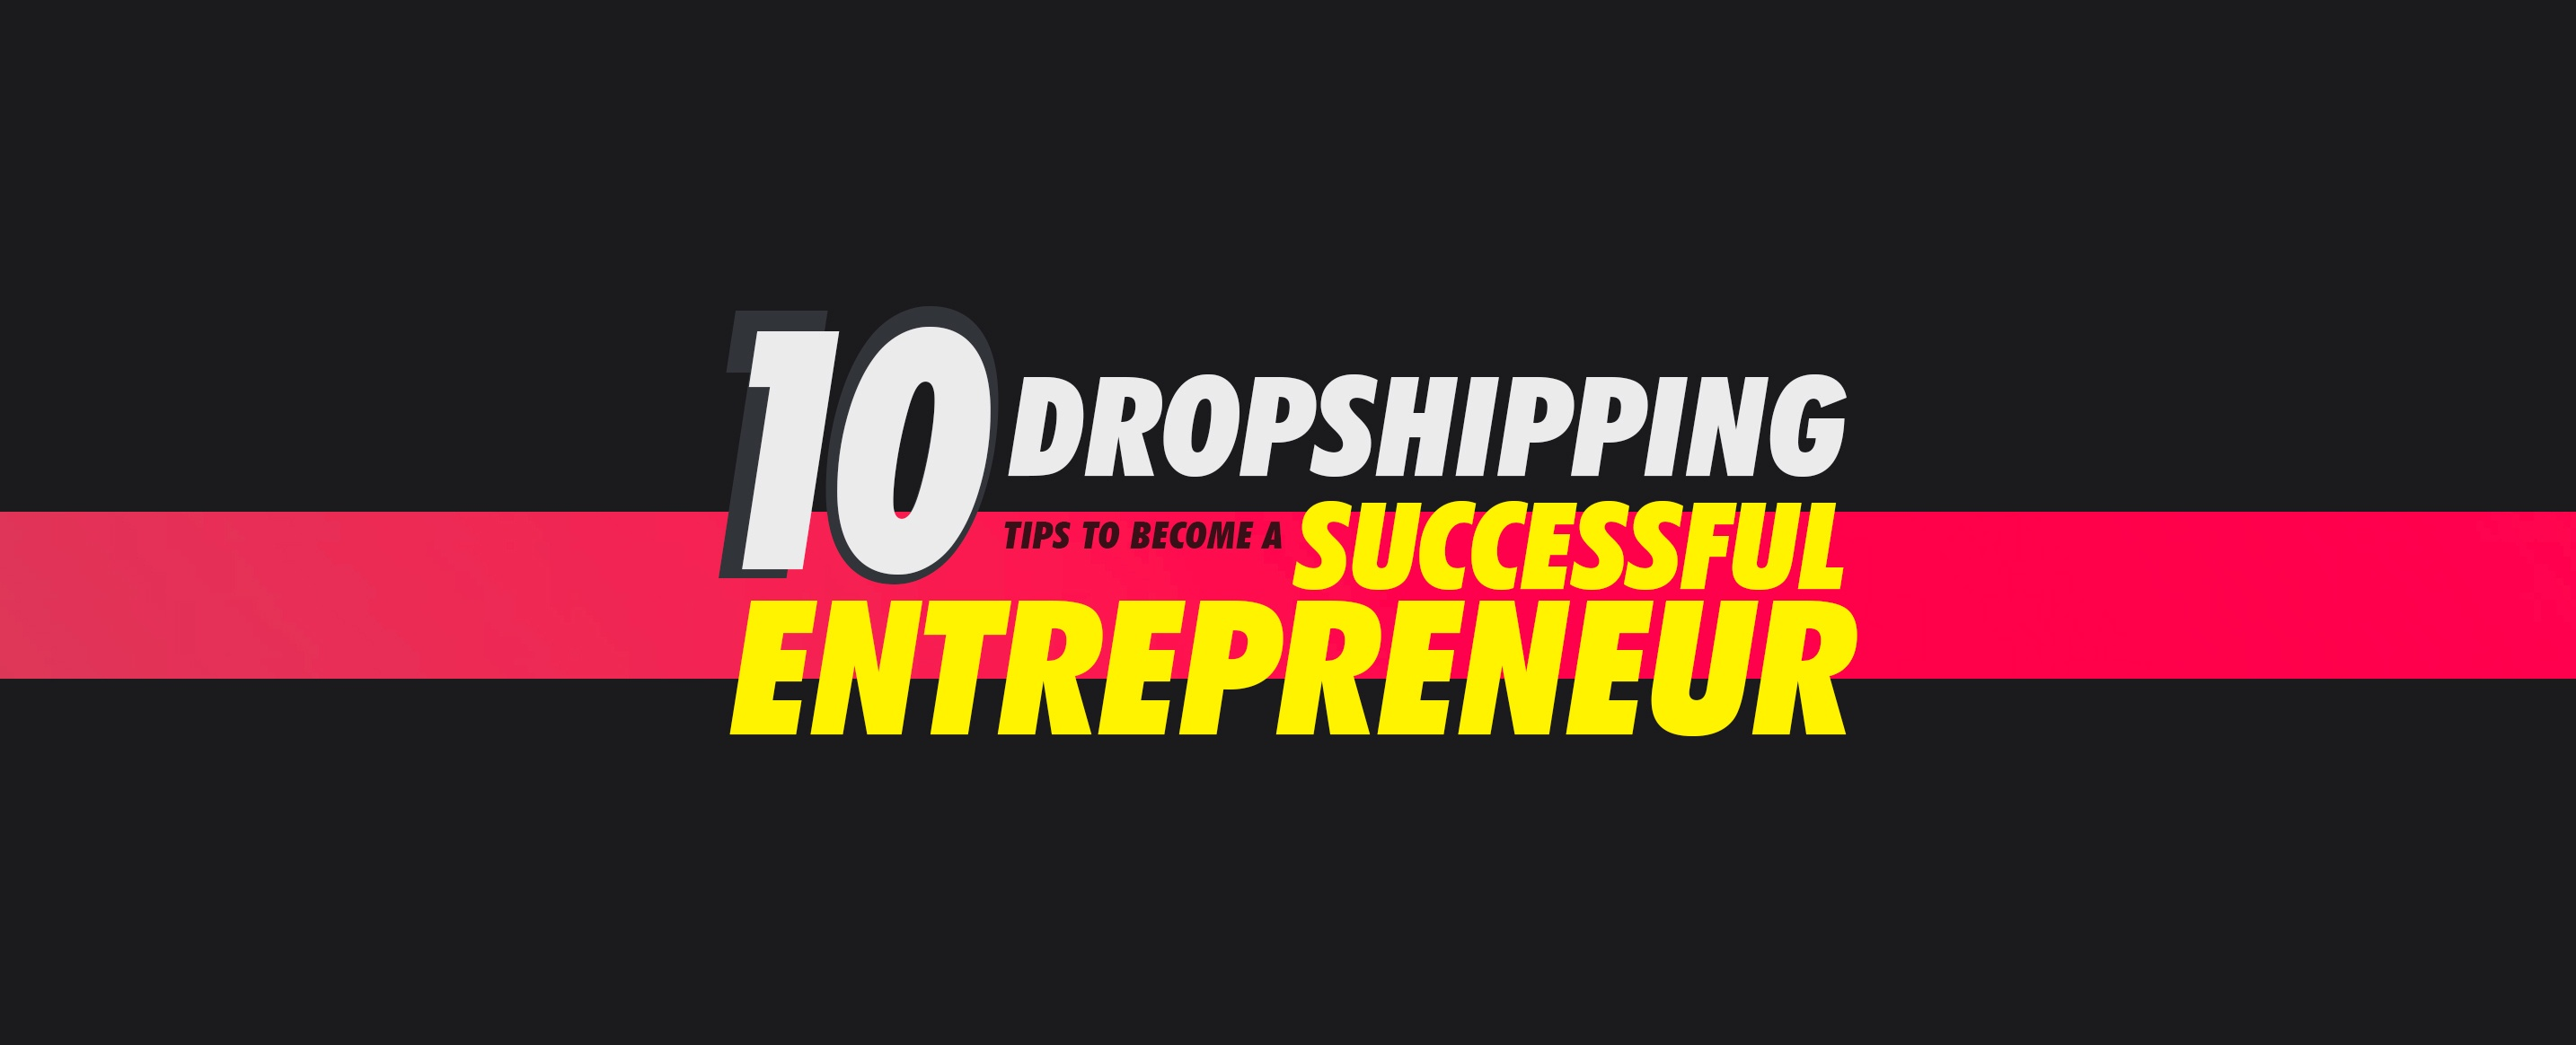 10-Dropshipping-Tips-To-Become-a-Successful-Entrepreneur